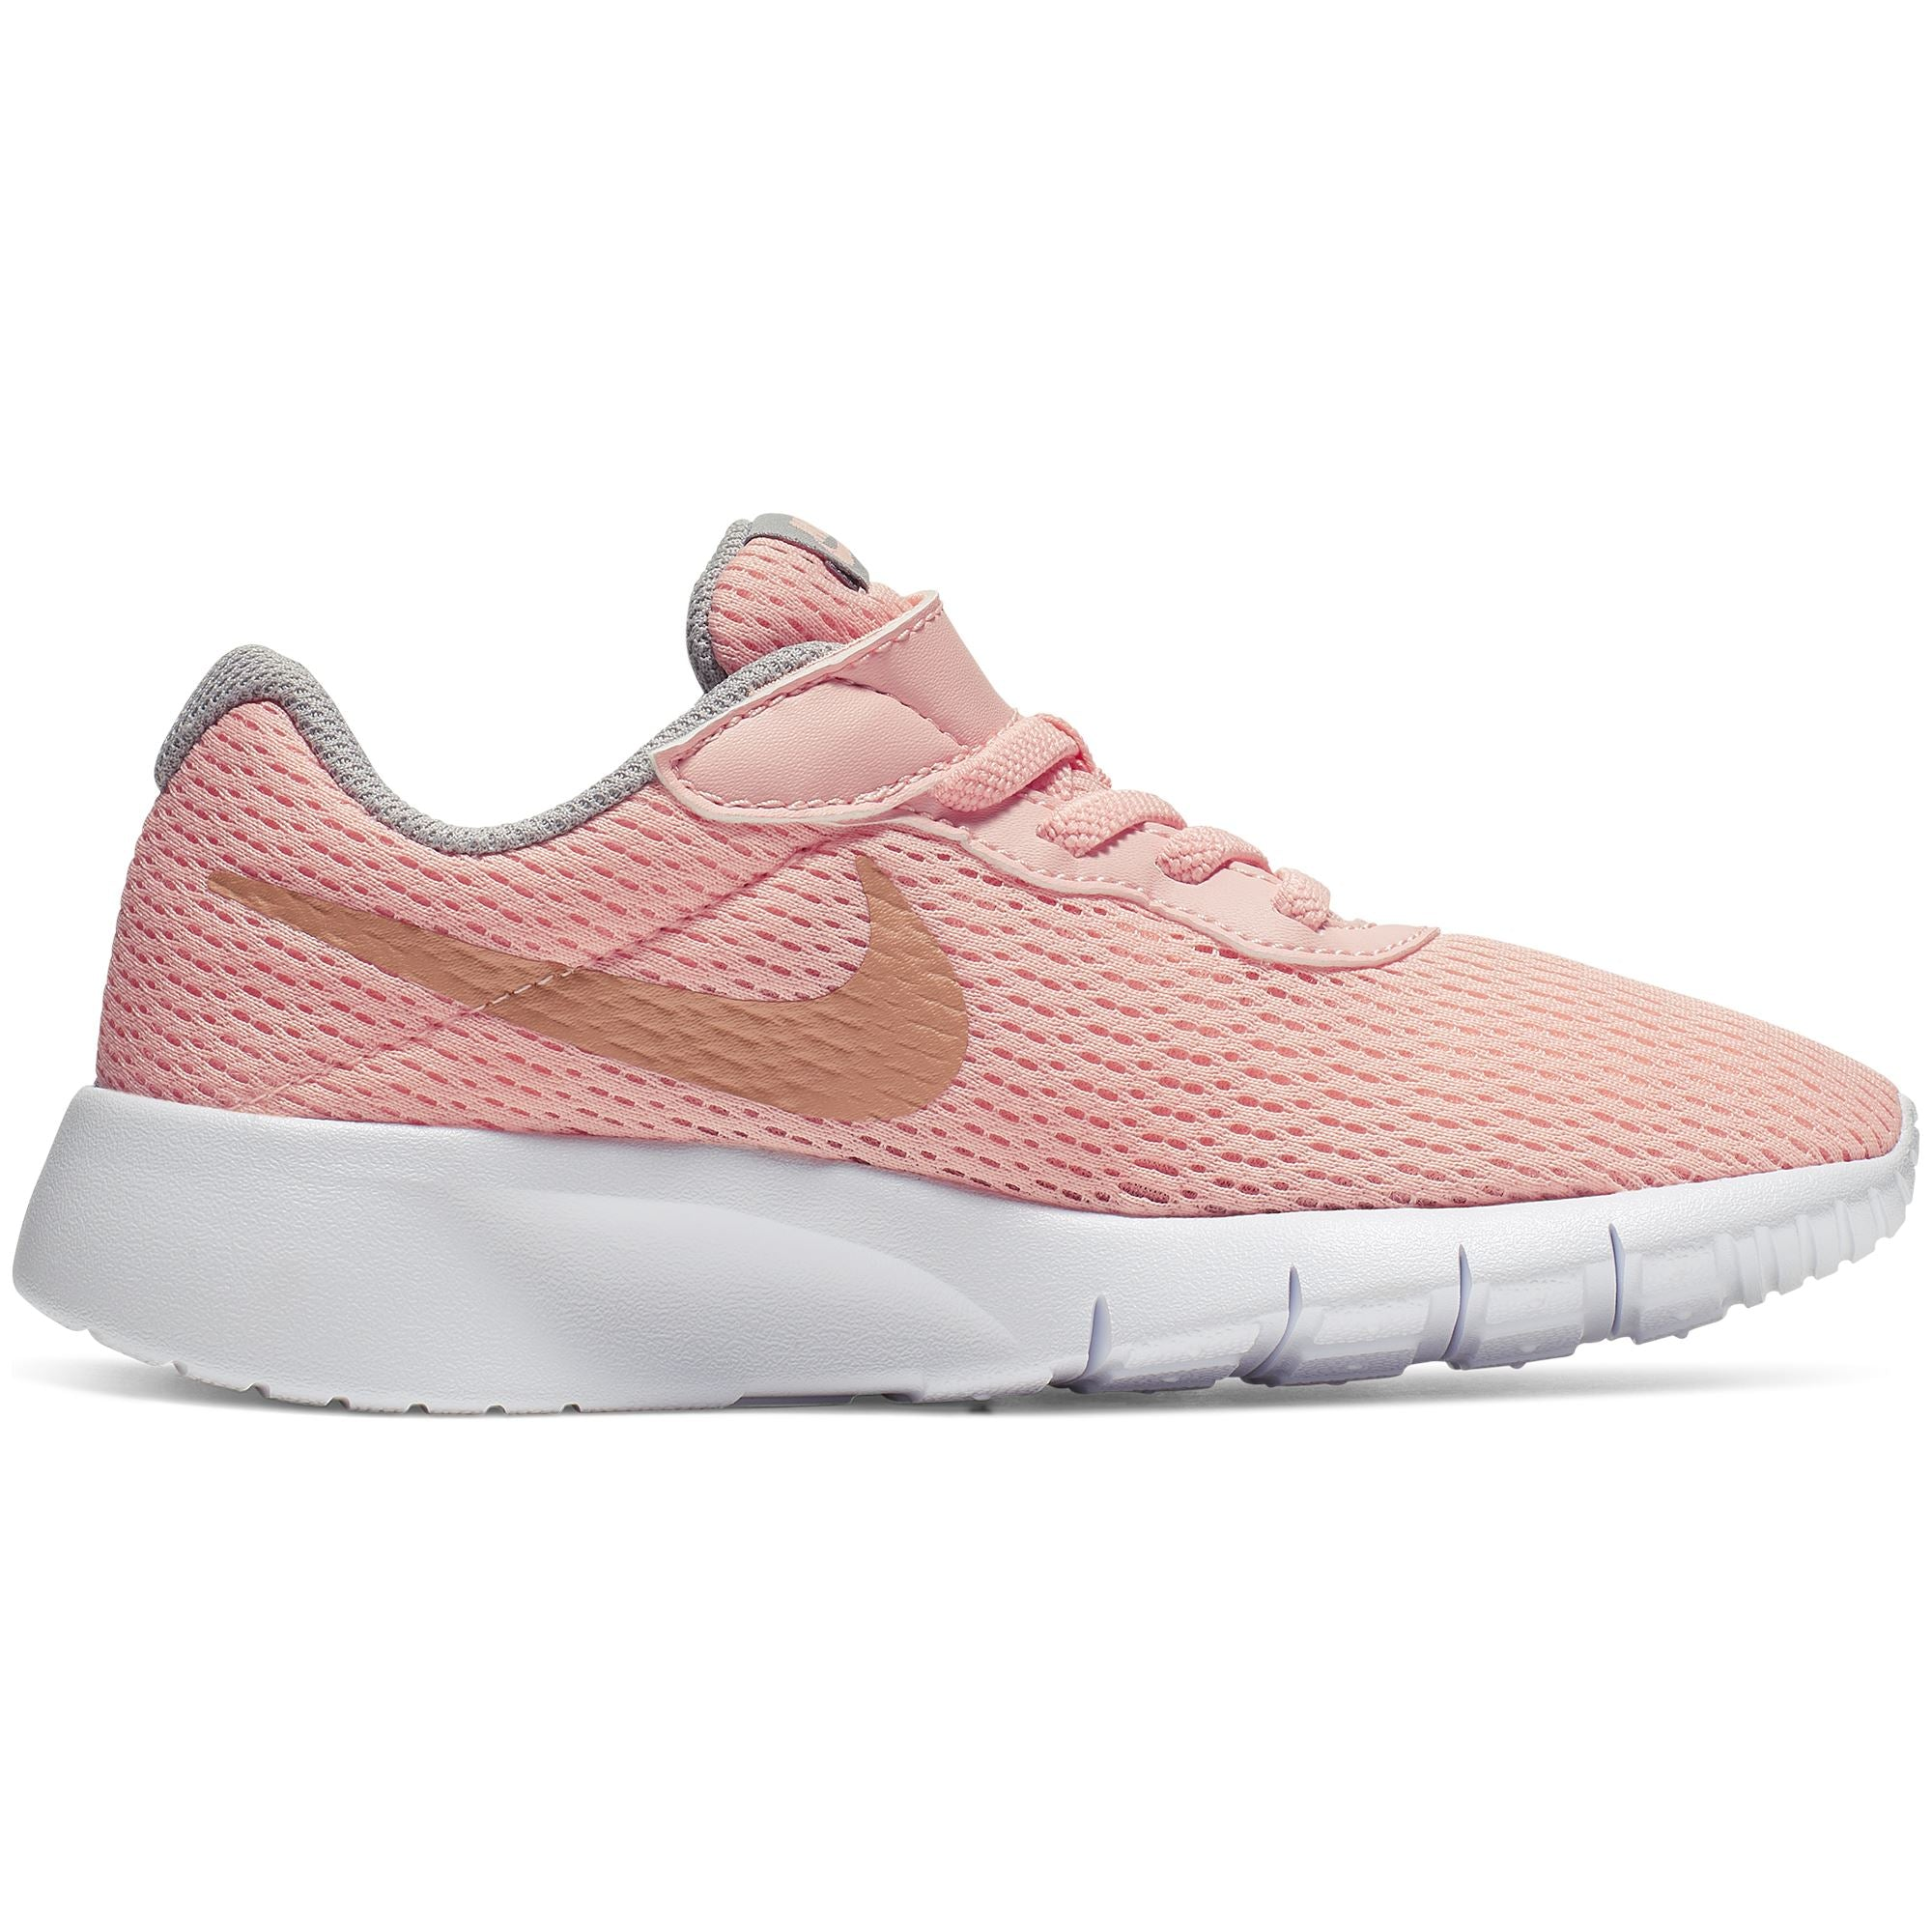 factory outlets best selling exclusive deals Nike Girls Tanjun (PS) Pre-School Shoe - Pink Tint/Mtlc Rose  Gold-Atmosphere Grey